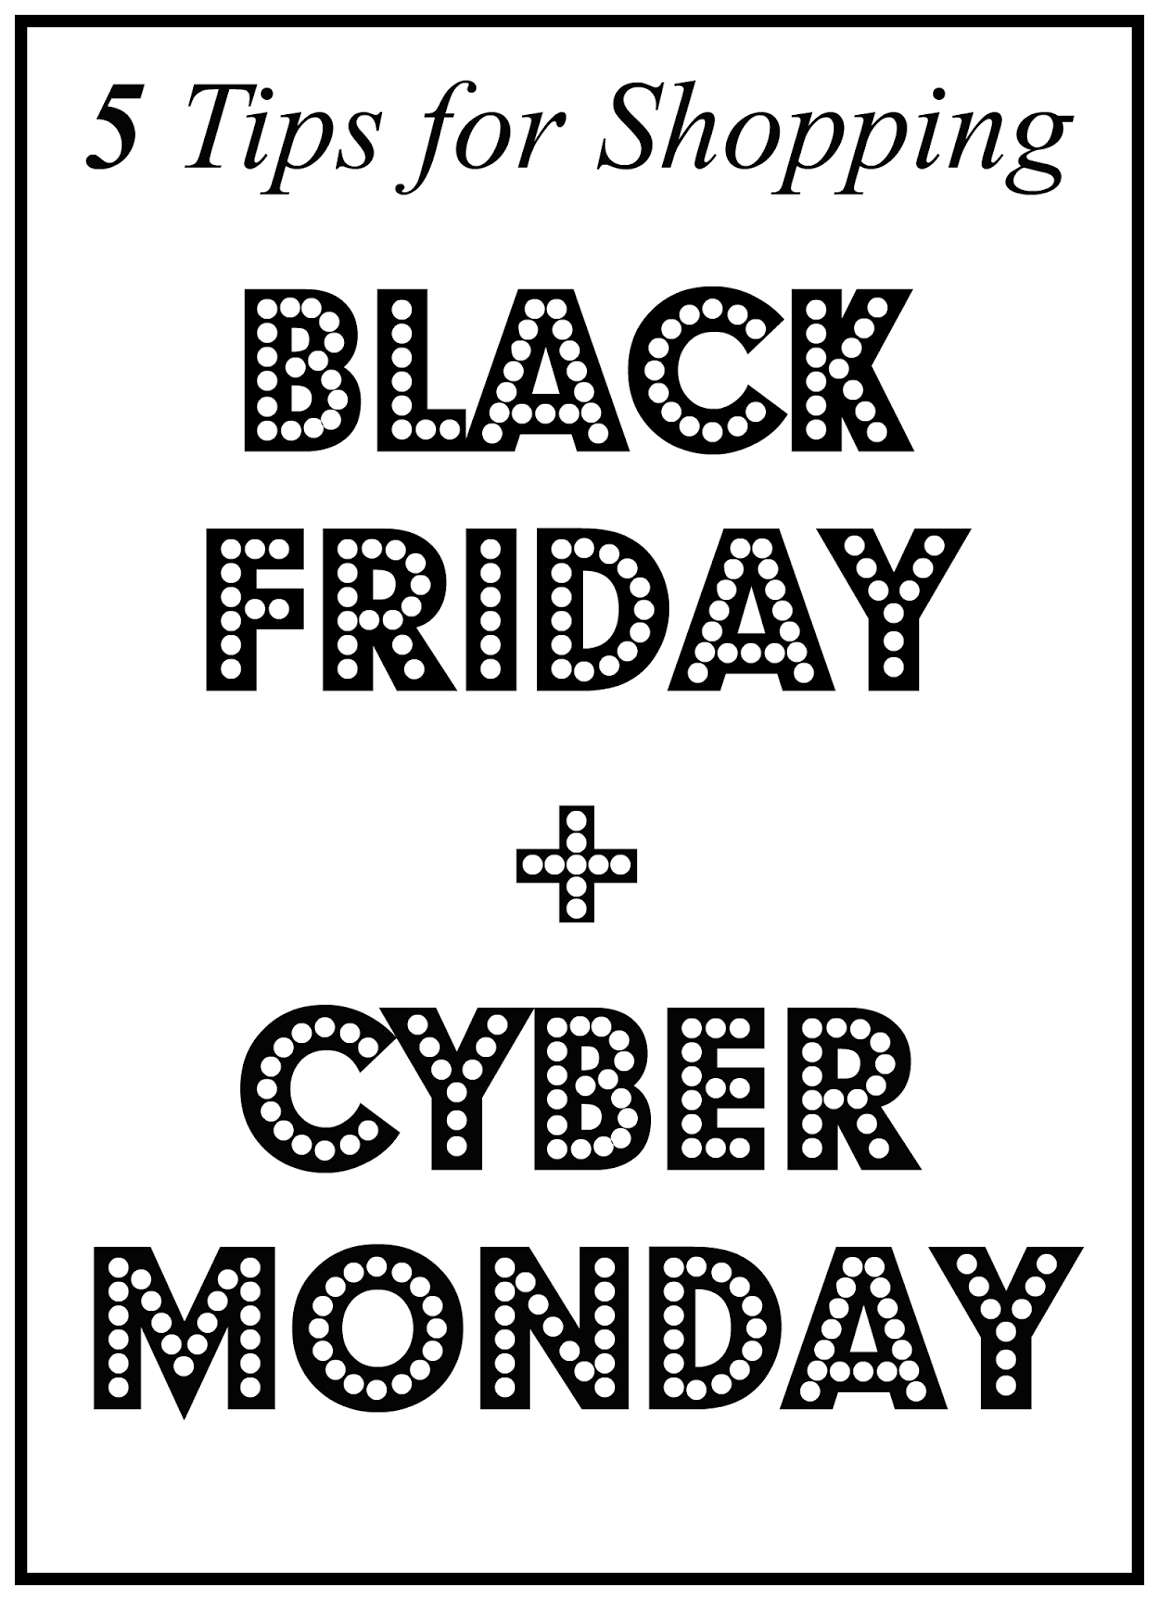 5 Tips for shopping Black Friday/Cyber Monday